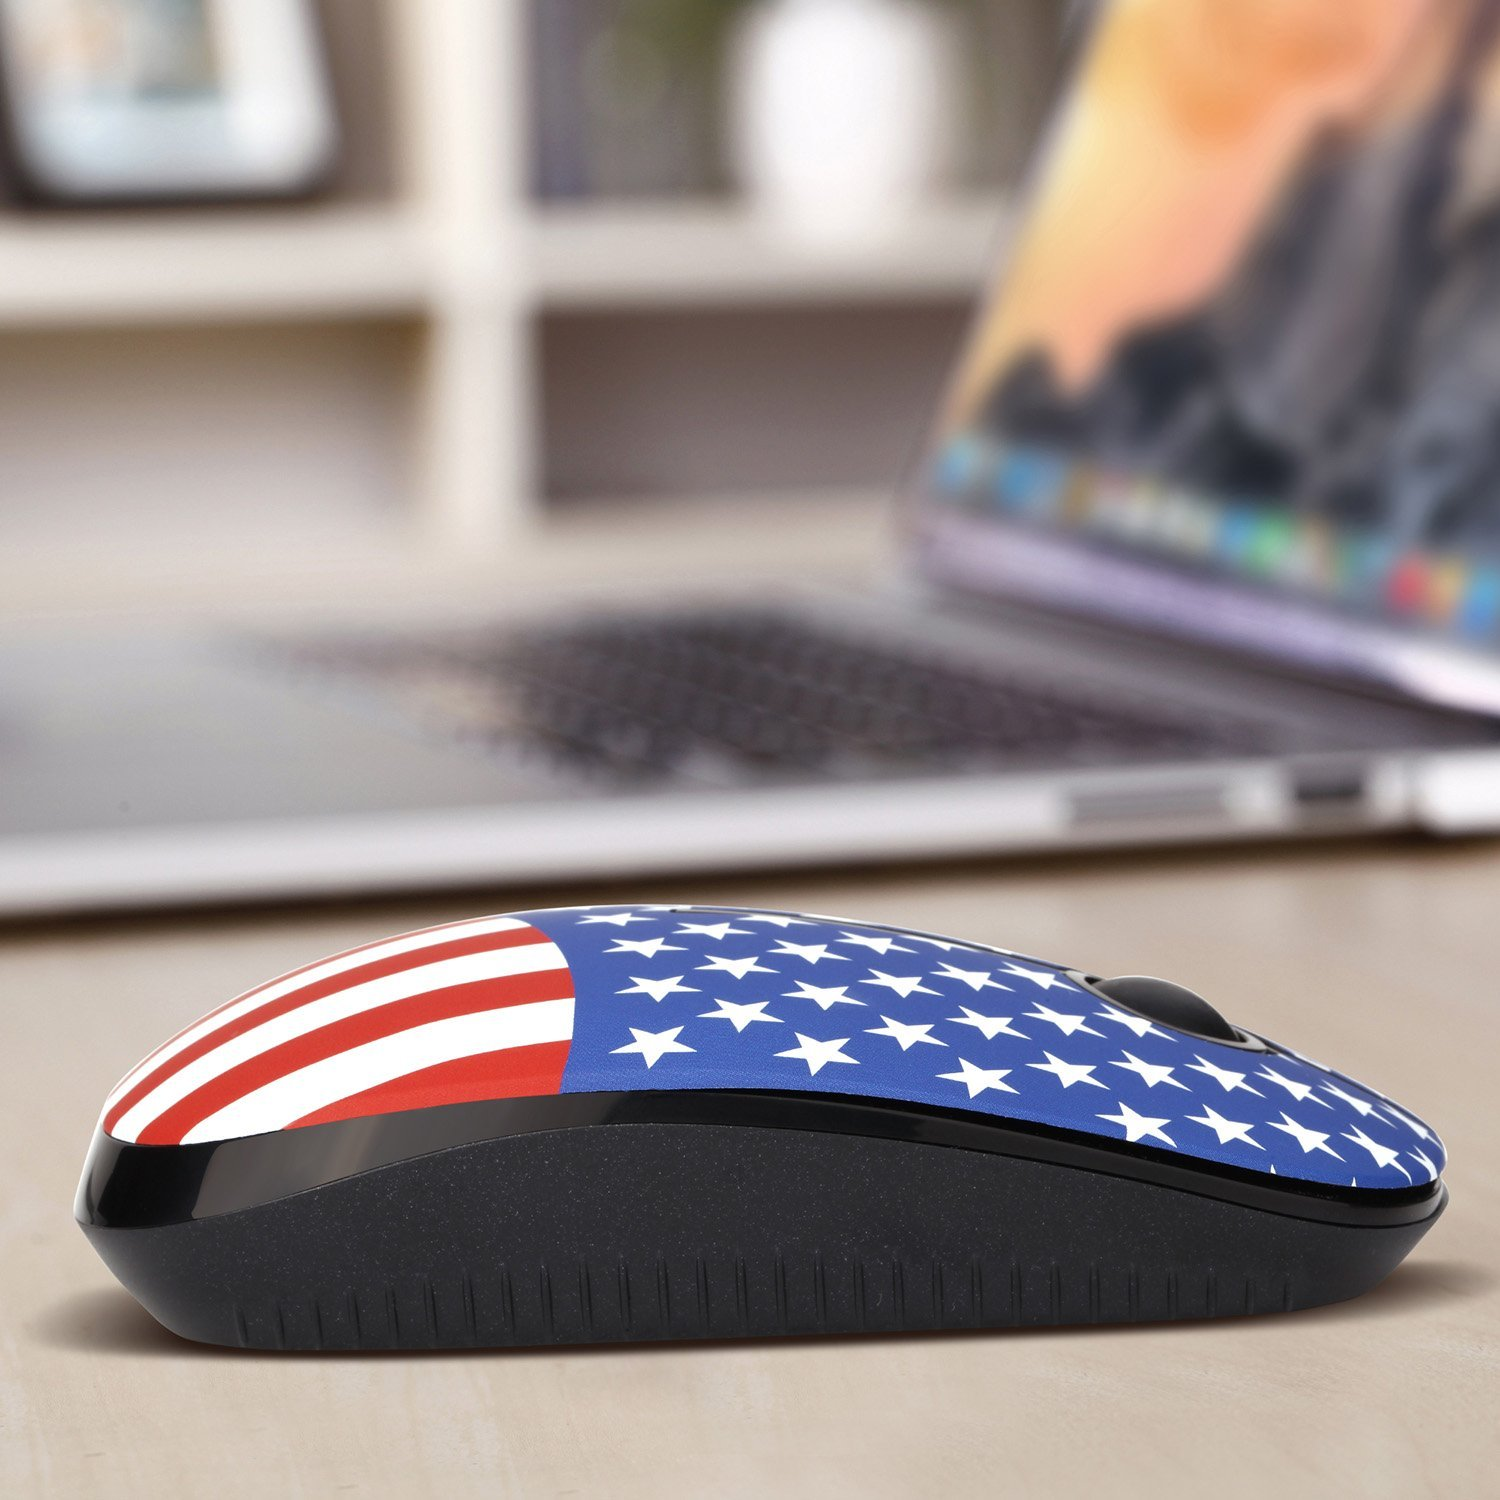 Jelly Comb 2.4G Slim Wireless Mouse with Nano Receiver